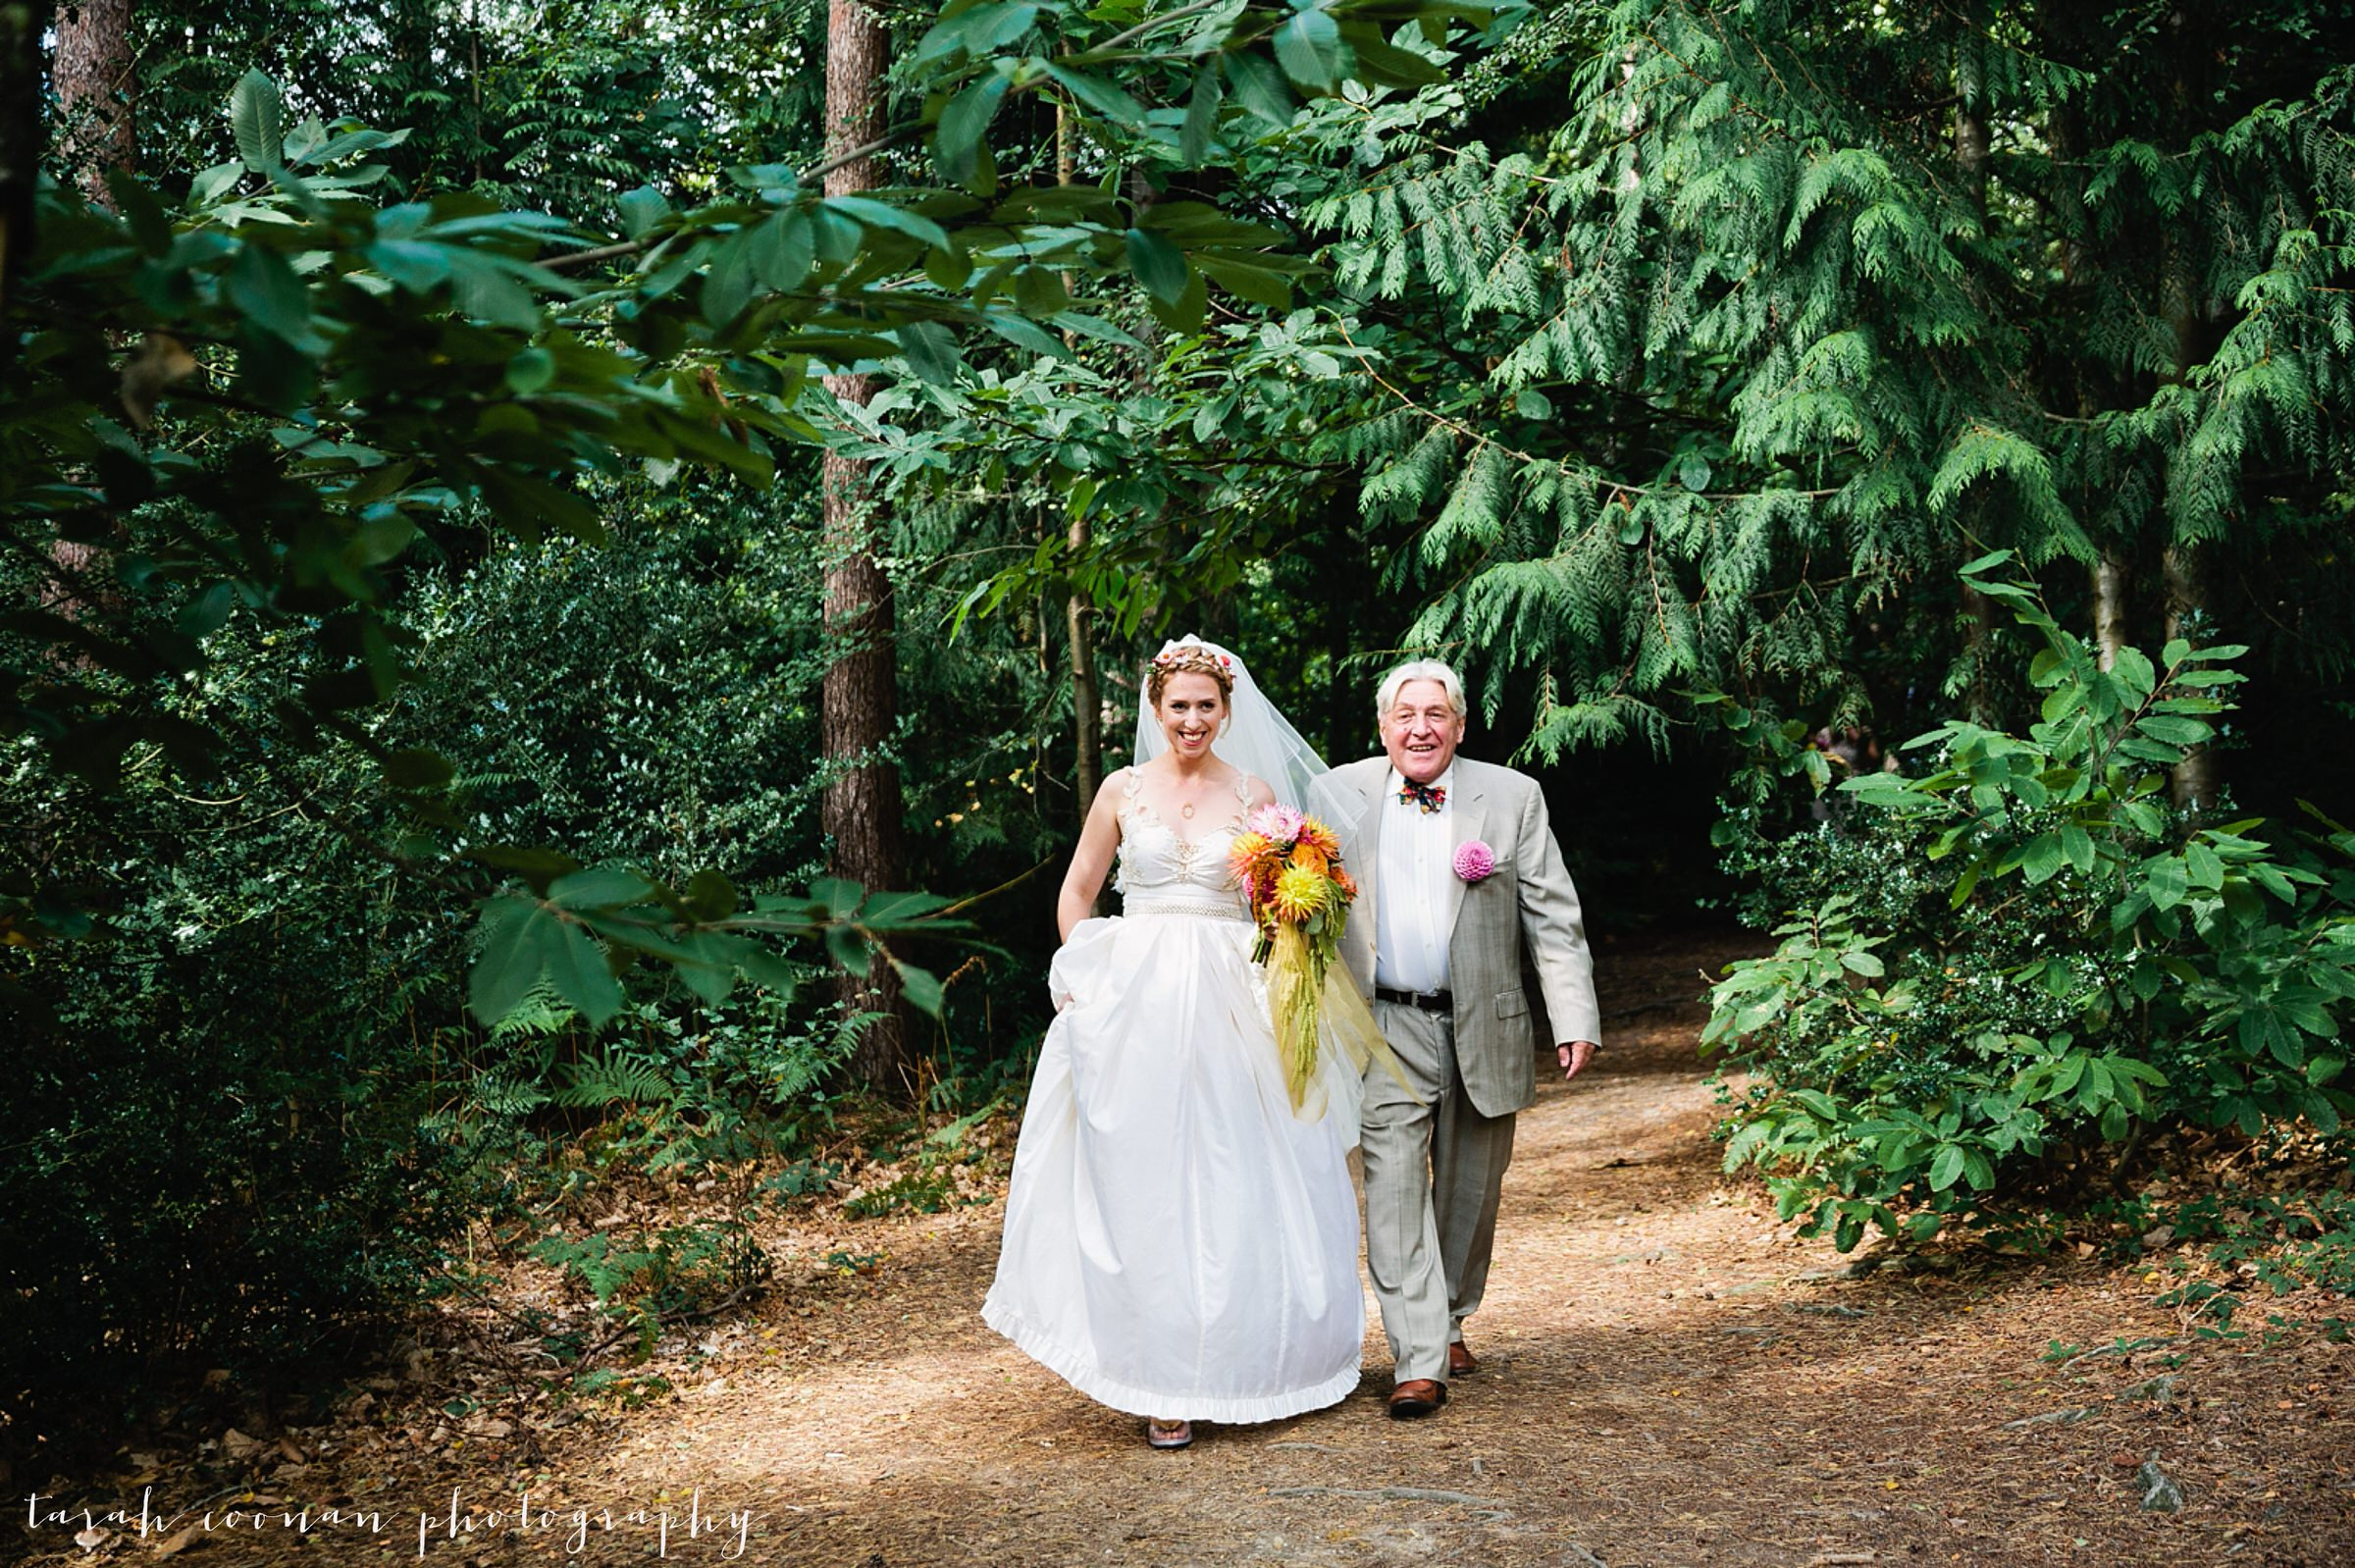 wedding in a wood